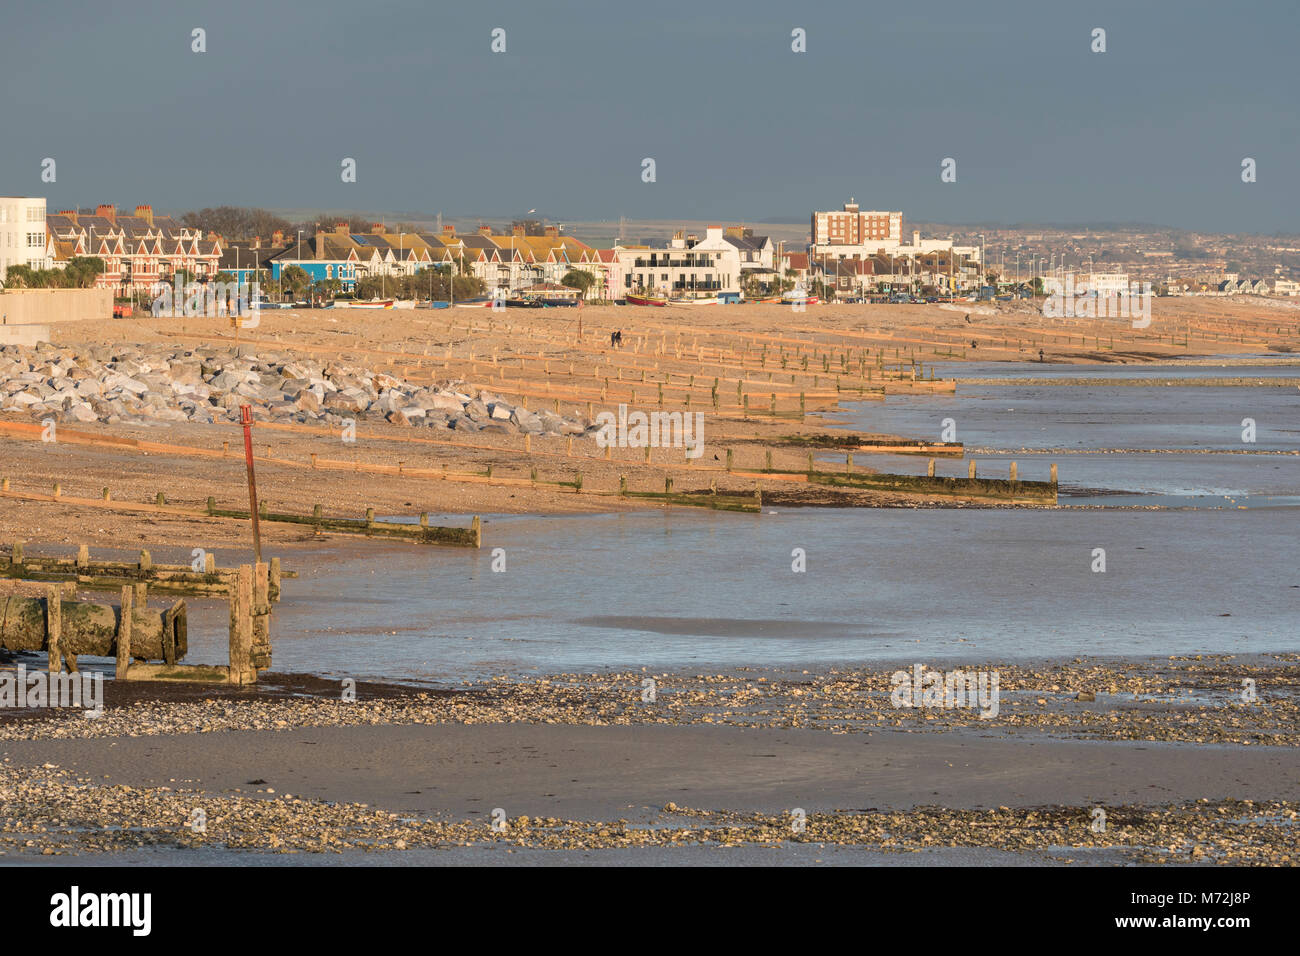 Landscape view of the seafront coastline on a well lit day with dark clouds in Worthing, West Sussex, England, UK. - Stock Image